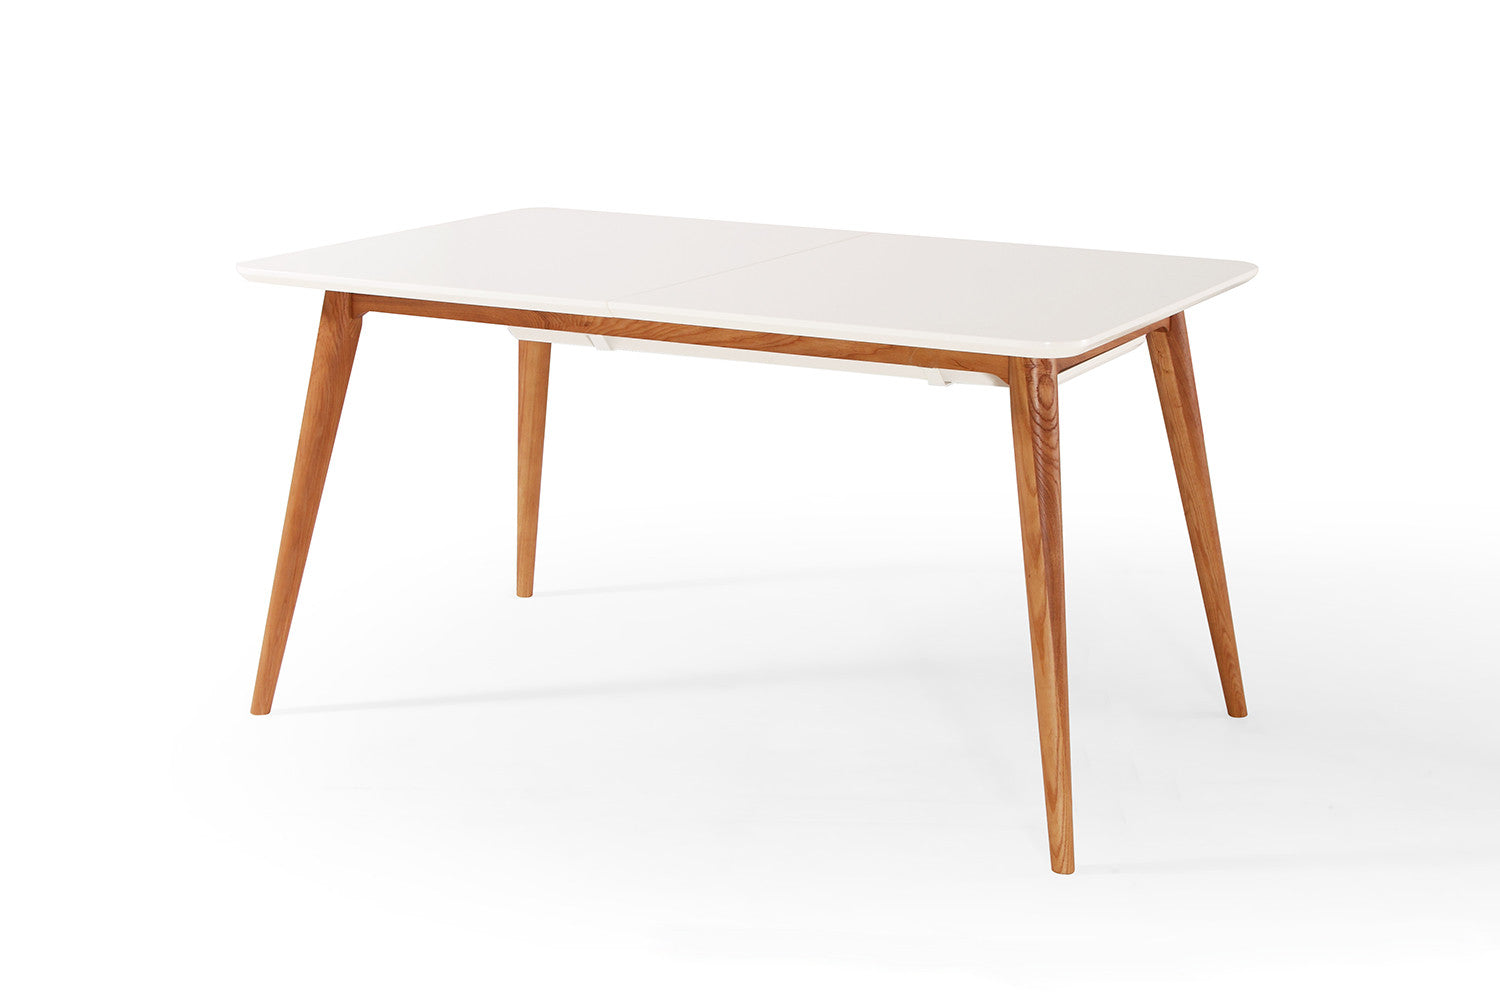 Table de salle manger extensible scandinave wyna dewarens for Solde table a manger